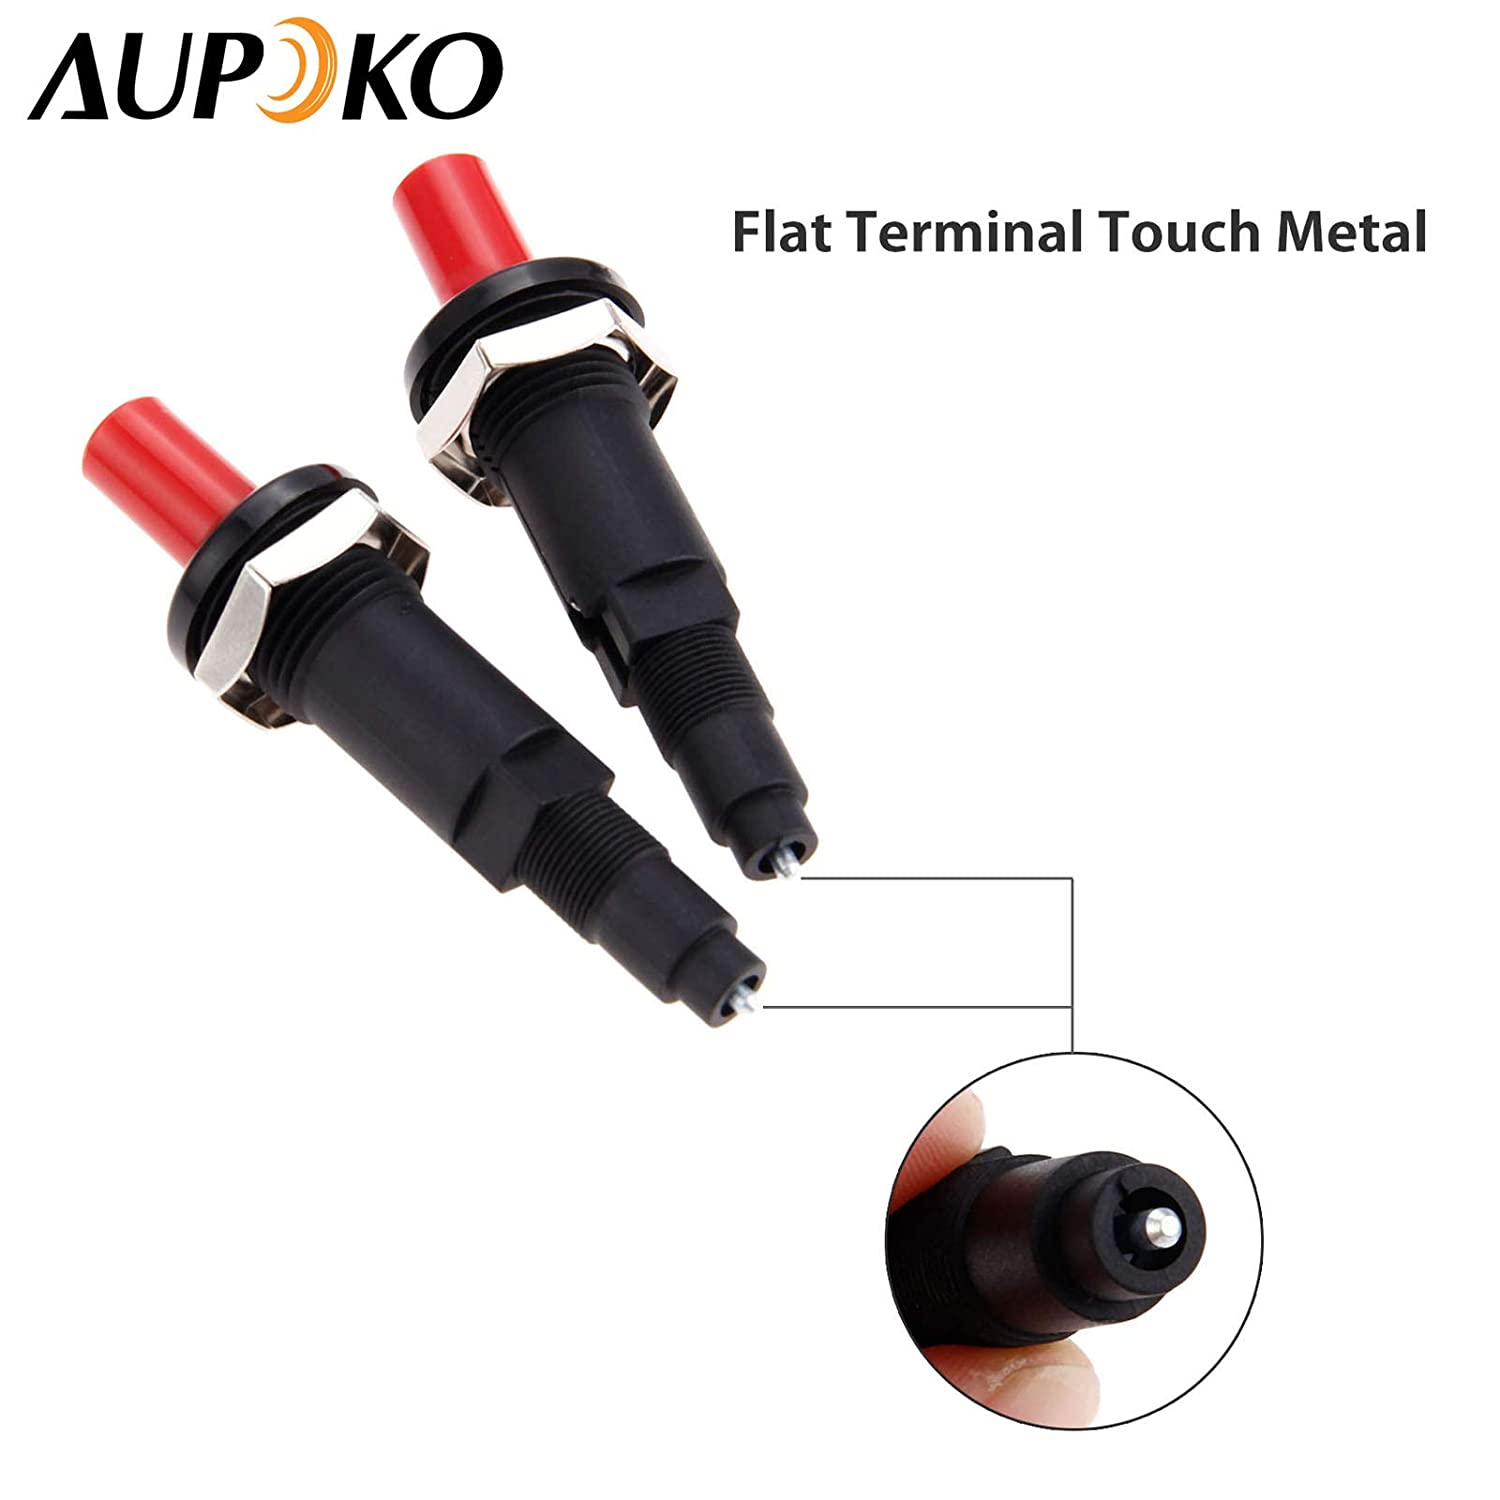 Aupoko Piezo Spark Ignition Fits for Gas Fireplace//Gas Oven//Gas 2 PC One Outlet Plug Push Button Ceramic Spark Kitchen Lighter with High Resistance